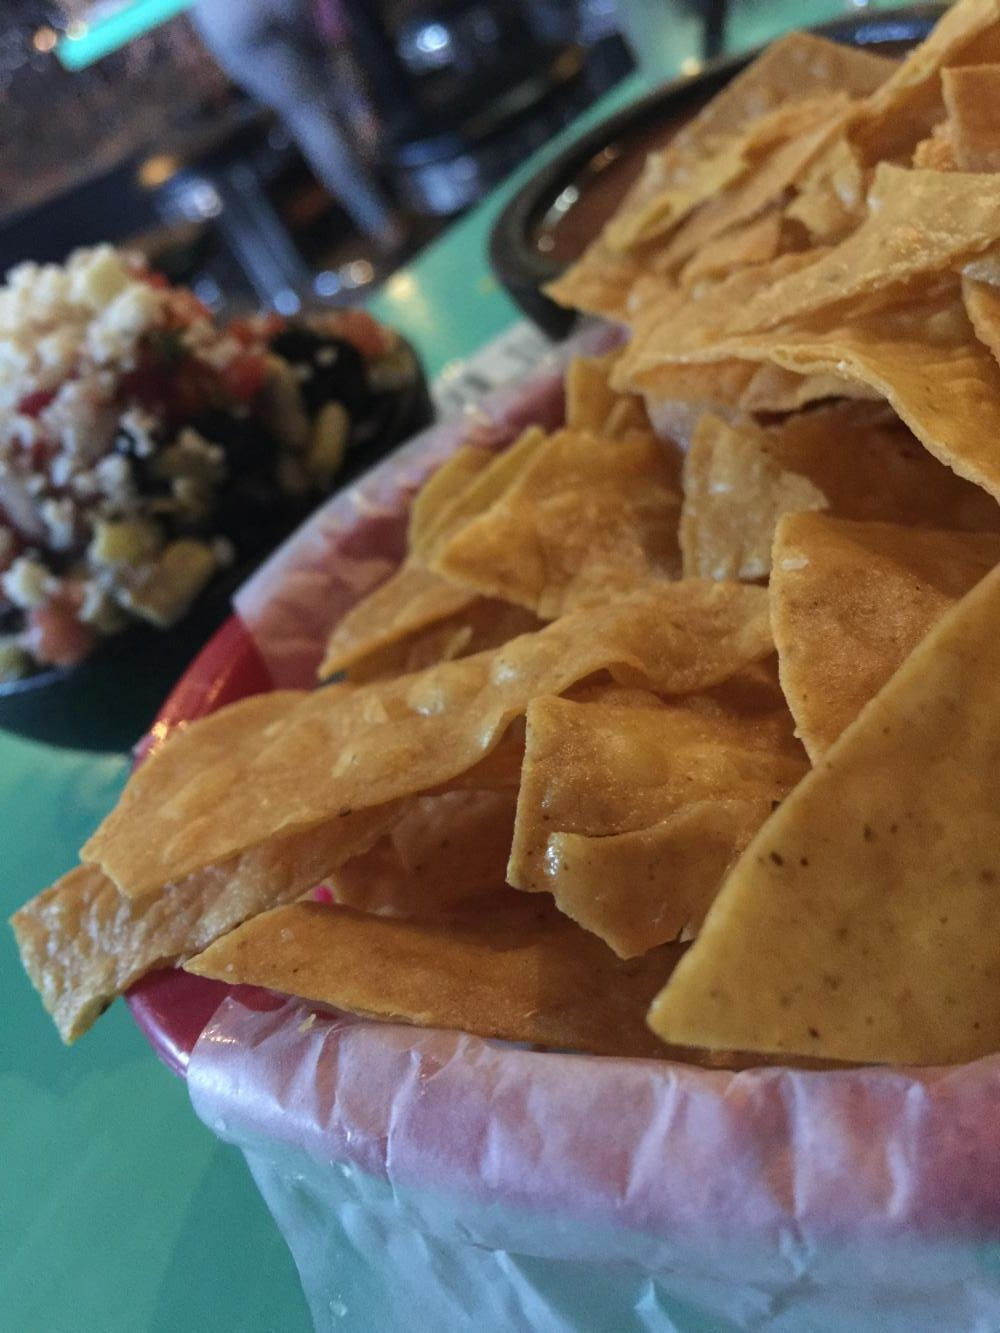 Chips and salsa at the recently opened Barrio on Fairmount in Cleveland heights